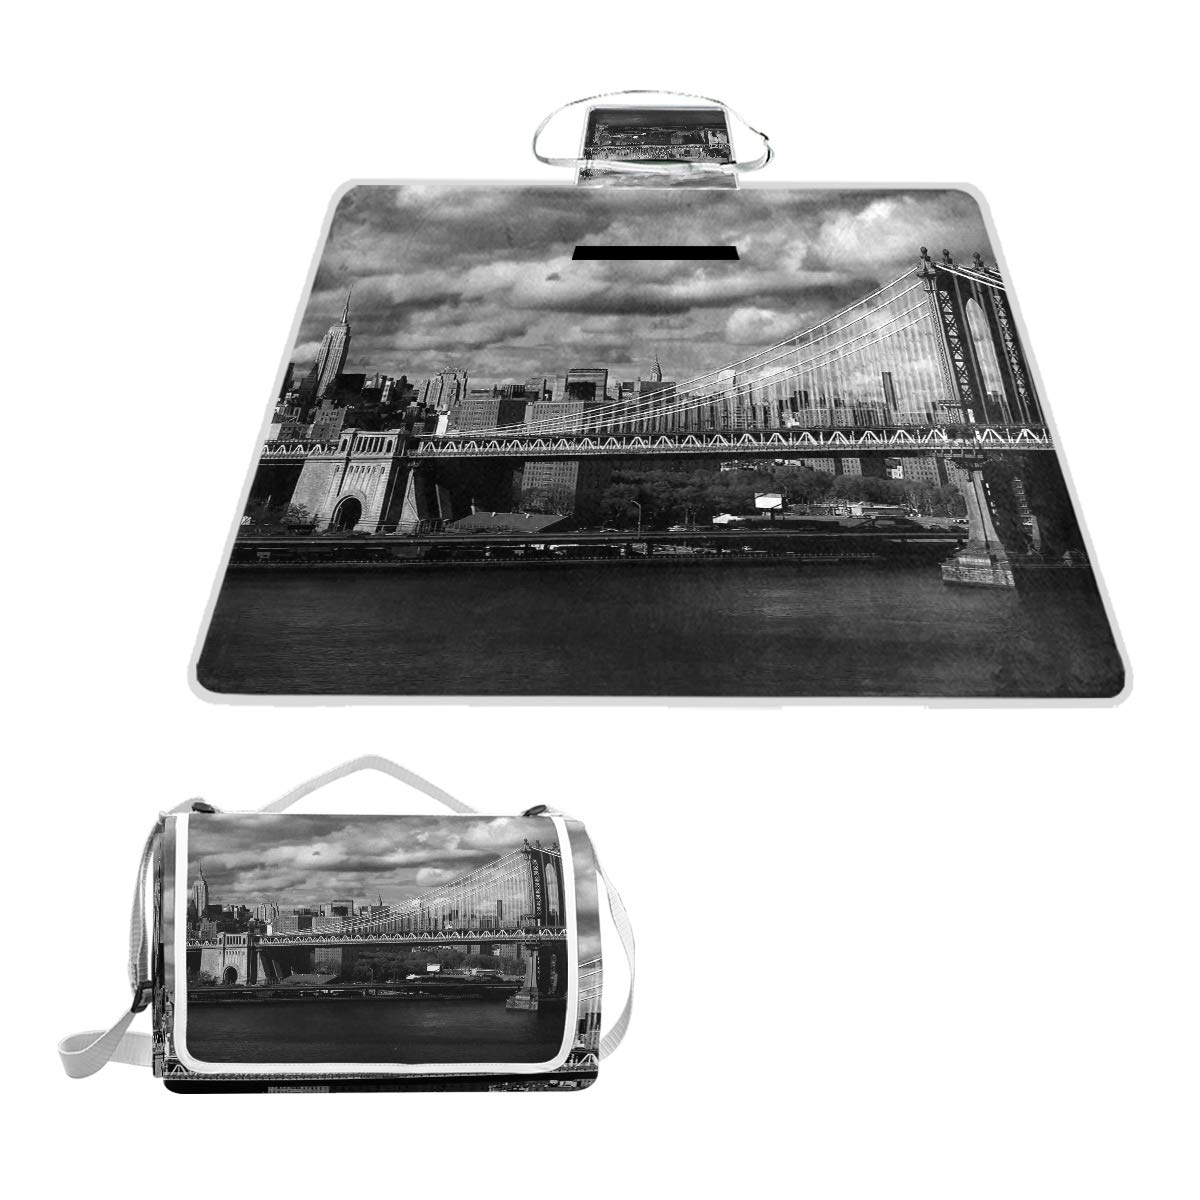 KVMV Black and White Panorama of New York City Skyline with Focus On Manhattan Bridge Photo Picnic Mat Sandproof and Waterproof Outdoor Picnic Blanket for Camping Hiking Beach Grass Travel by KVMV